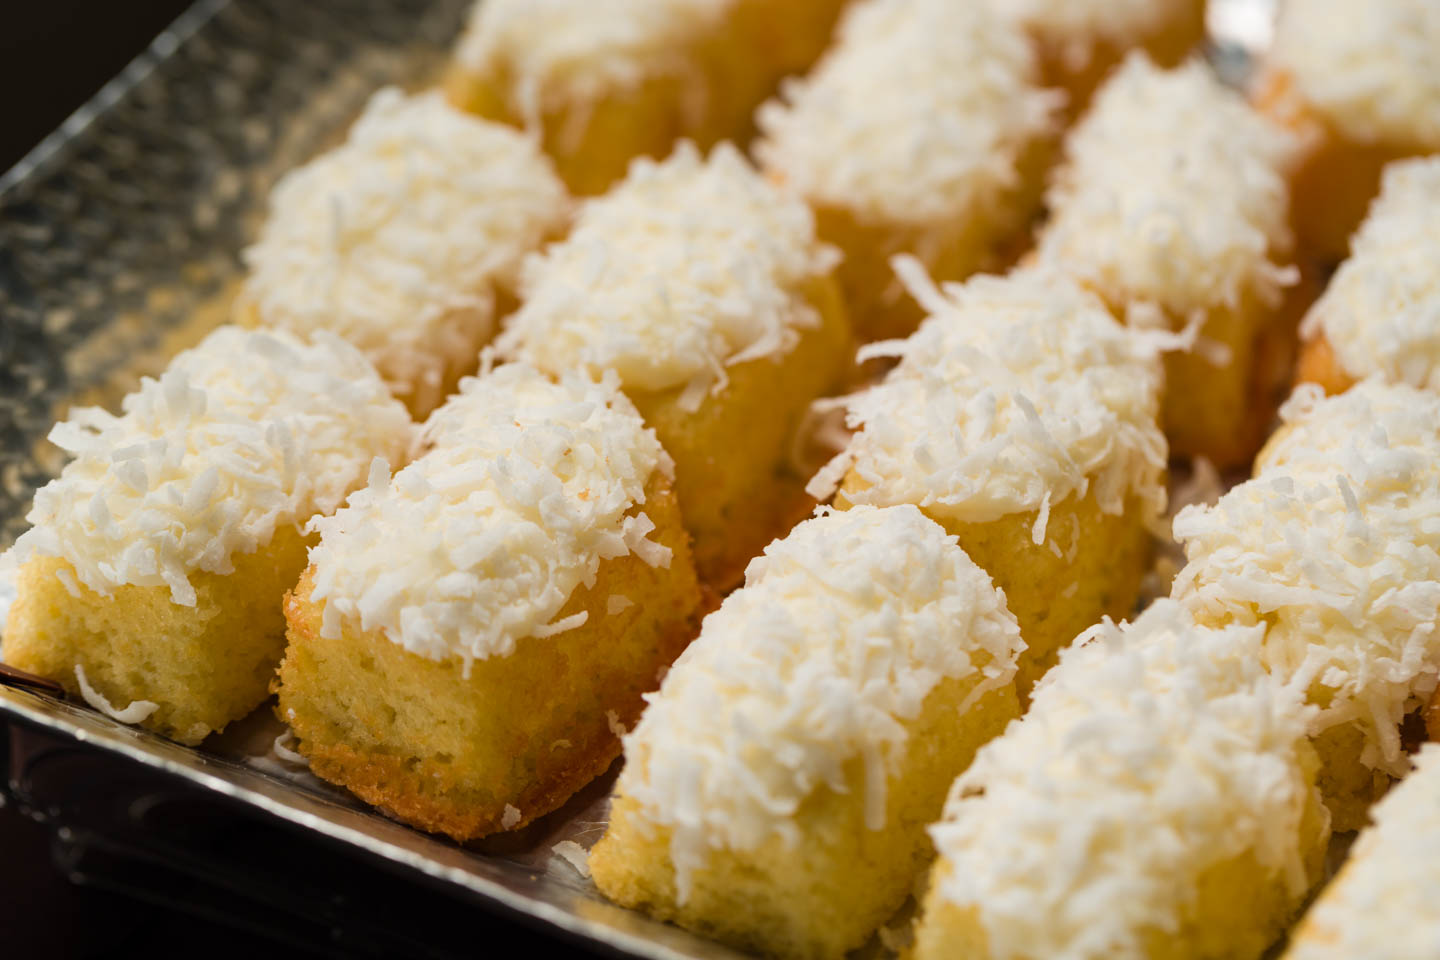 Homemade twinkies with coconut